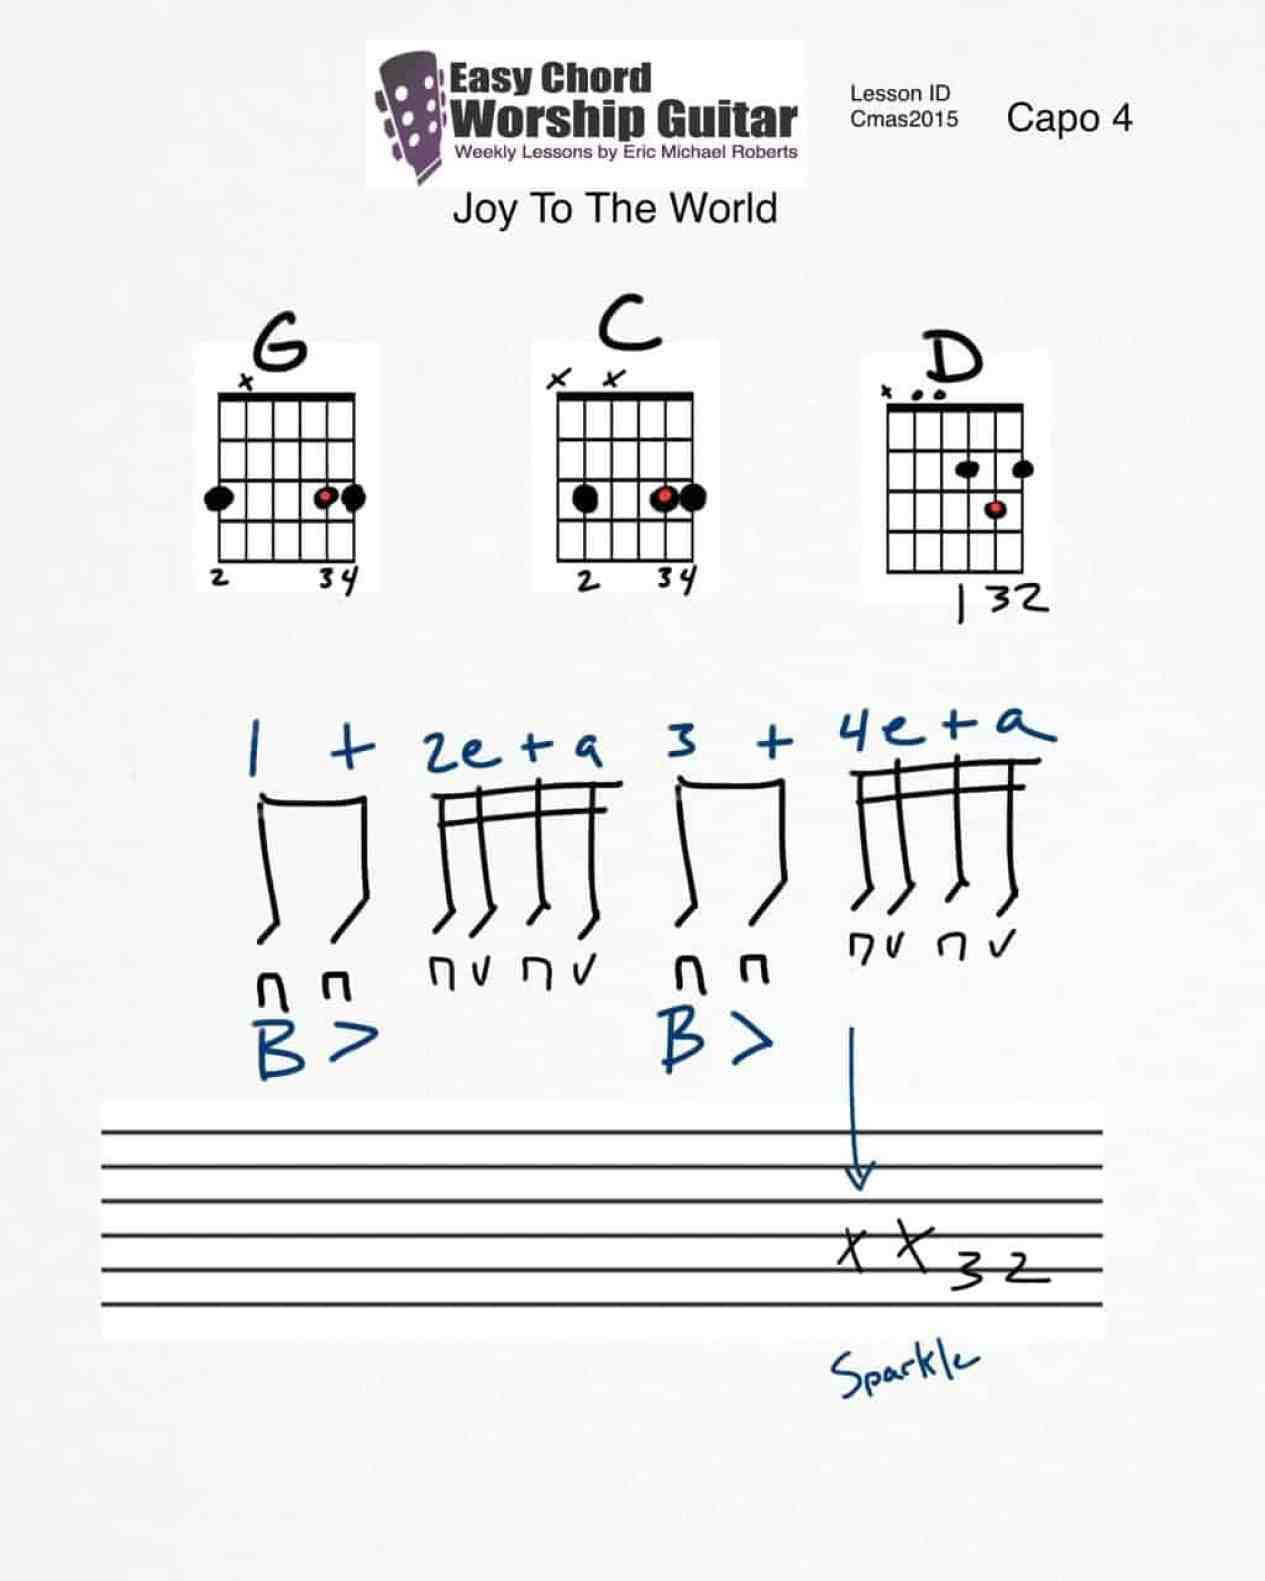 joytotheworld-lesson